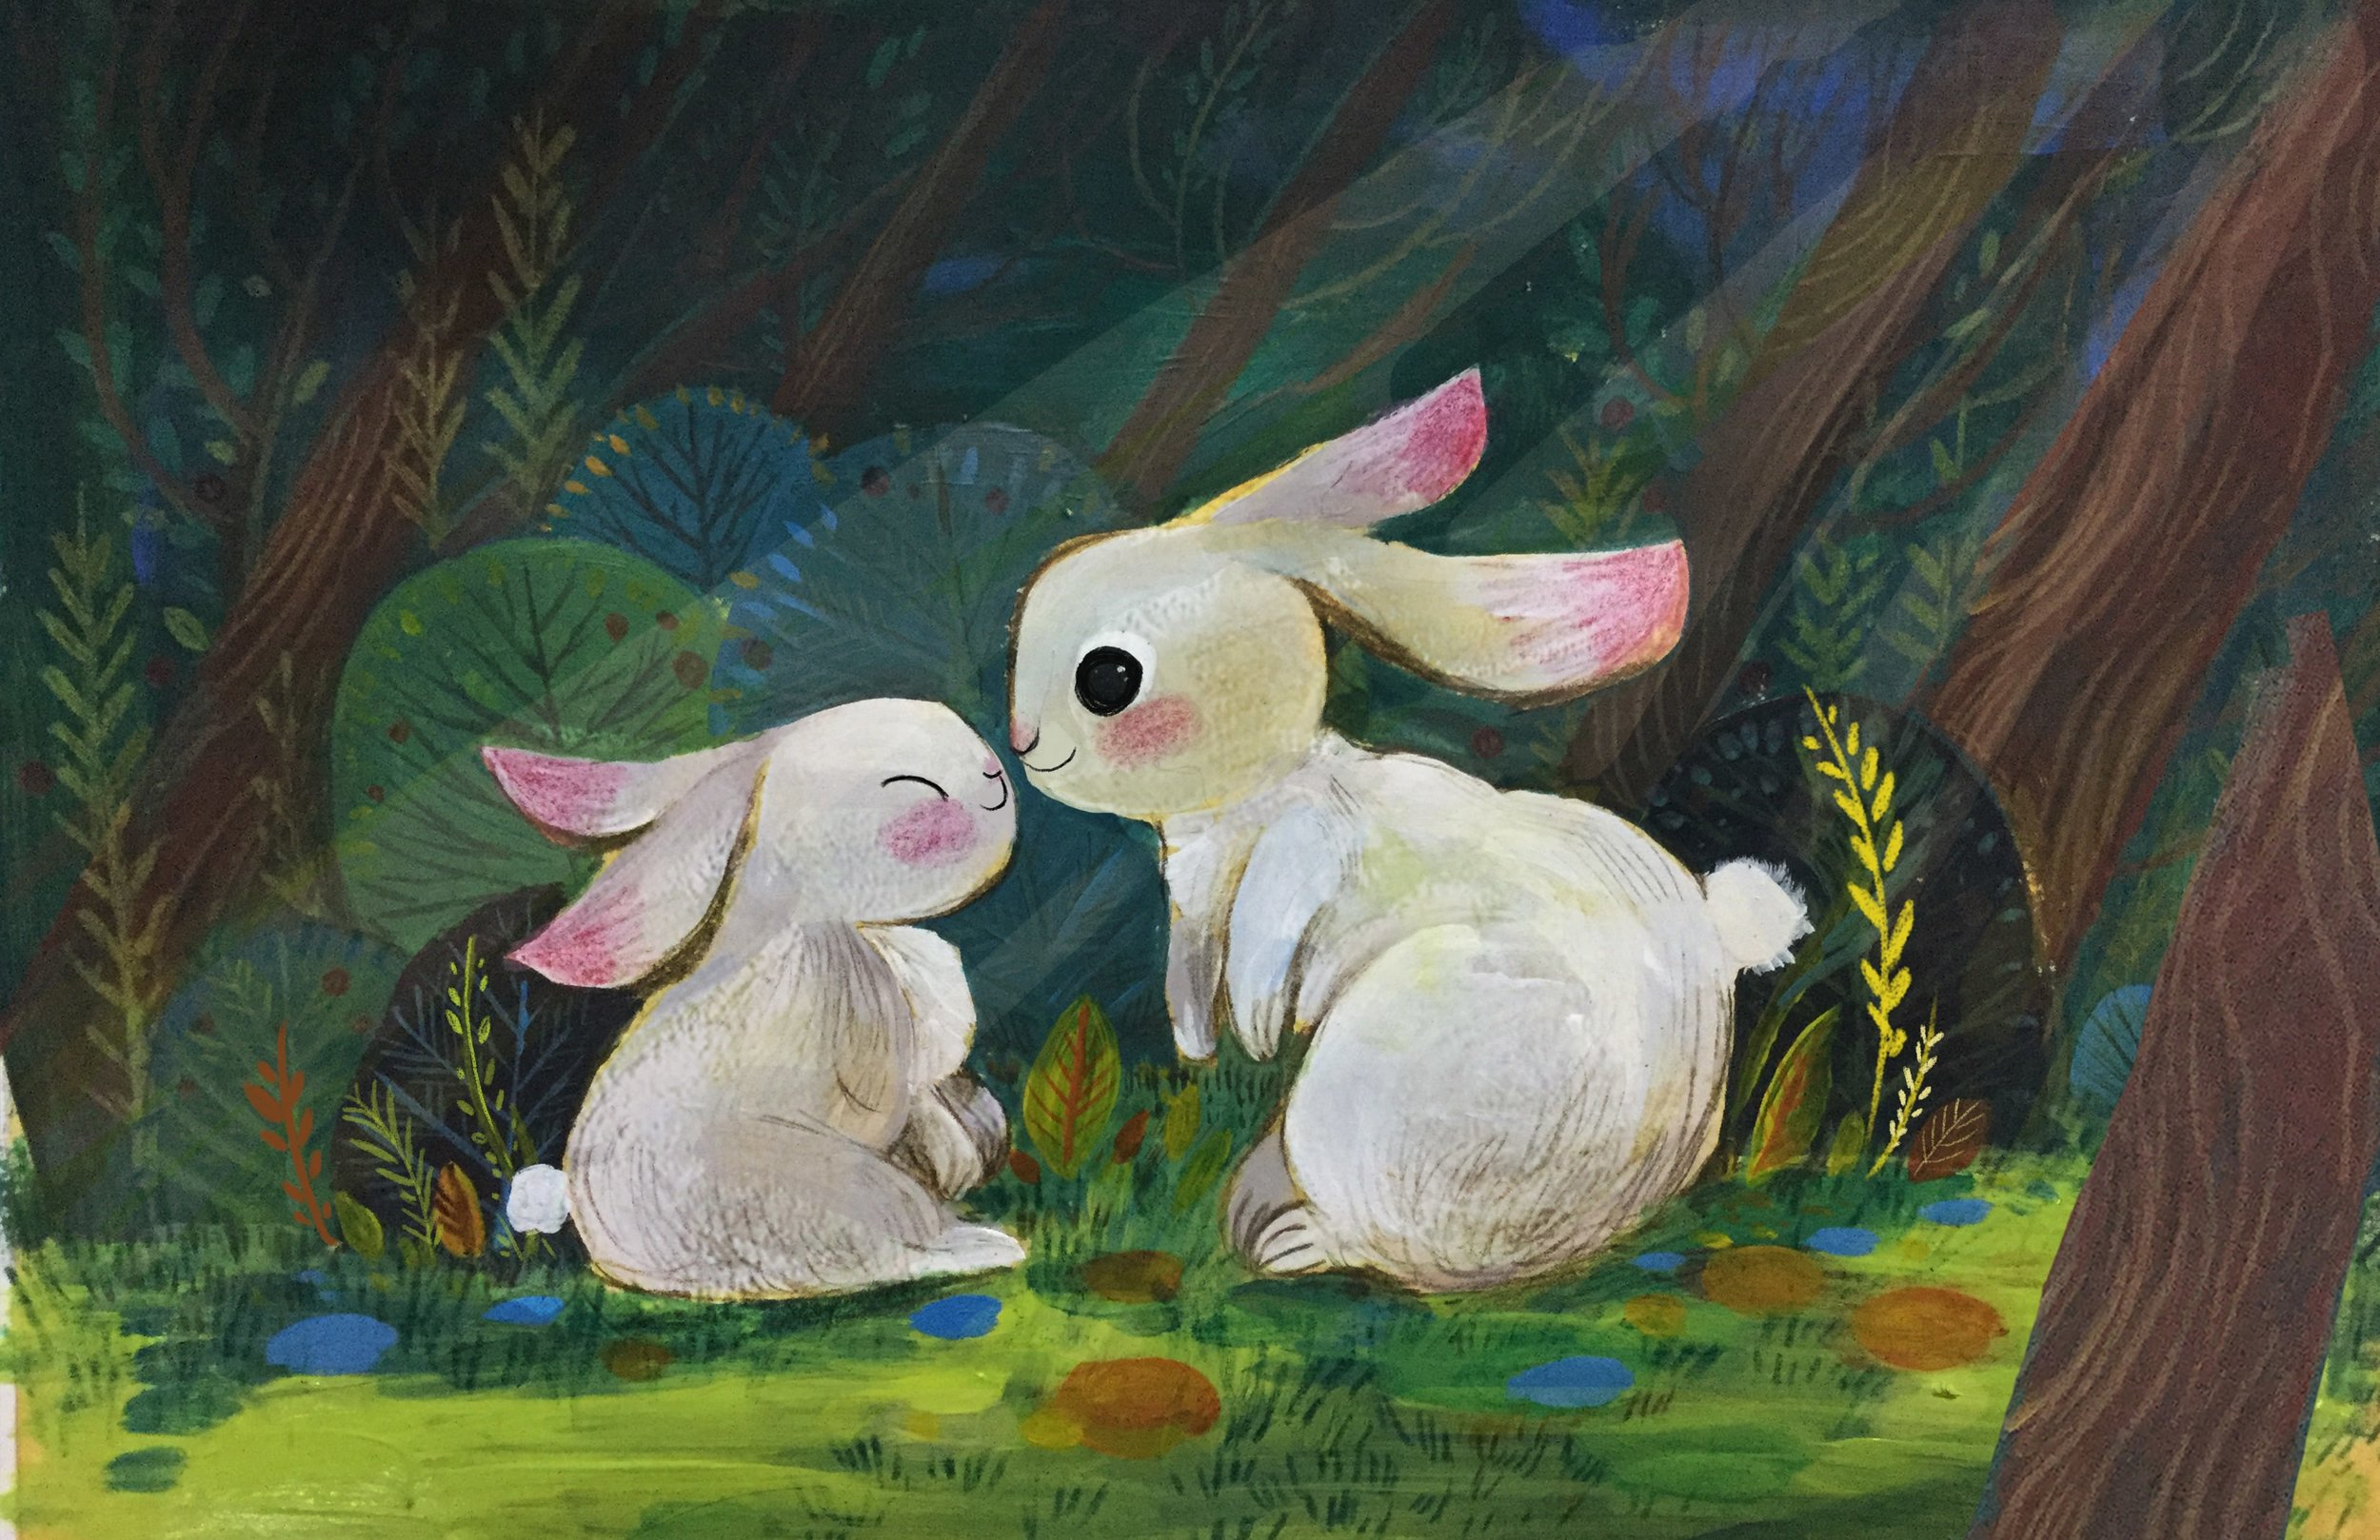 Image: bunny, I love you (acrylic, color pencil) by Dream Chen